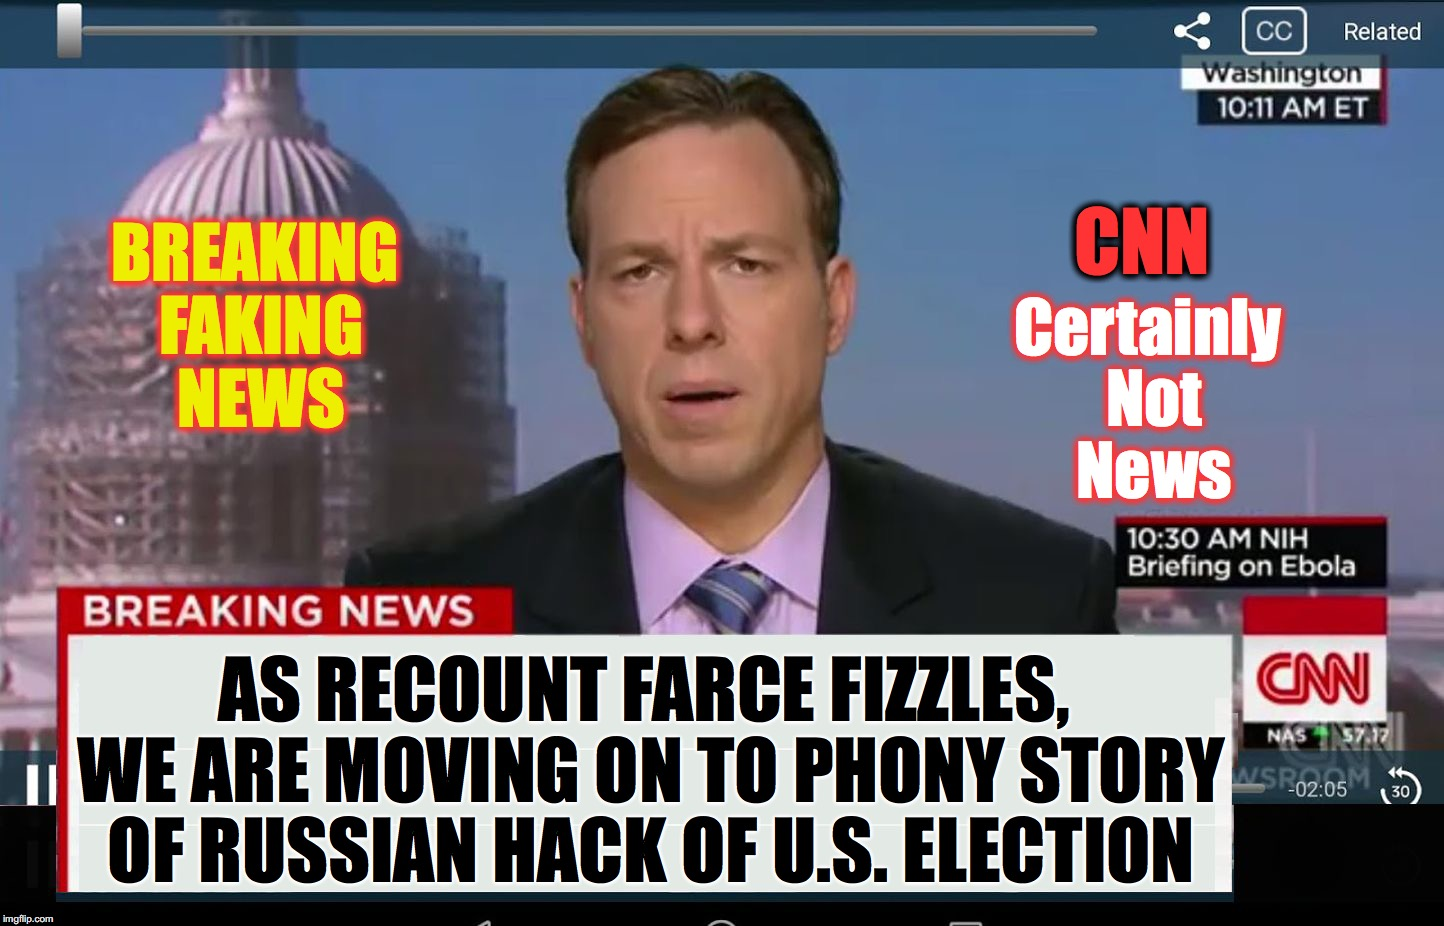 CNN Crazy News Network | BREAKING FAKING NEWS AS RECOUNT FARCE FIZZLES, WE ARE MOVING ON TO PHONY STORY OF RUSSIAN HACK OF U.S. ELECTION CNN Certainly Not News | image tagged in cnn crazy news network | made w/ Imgflip meme maker